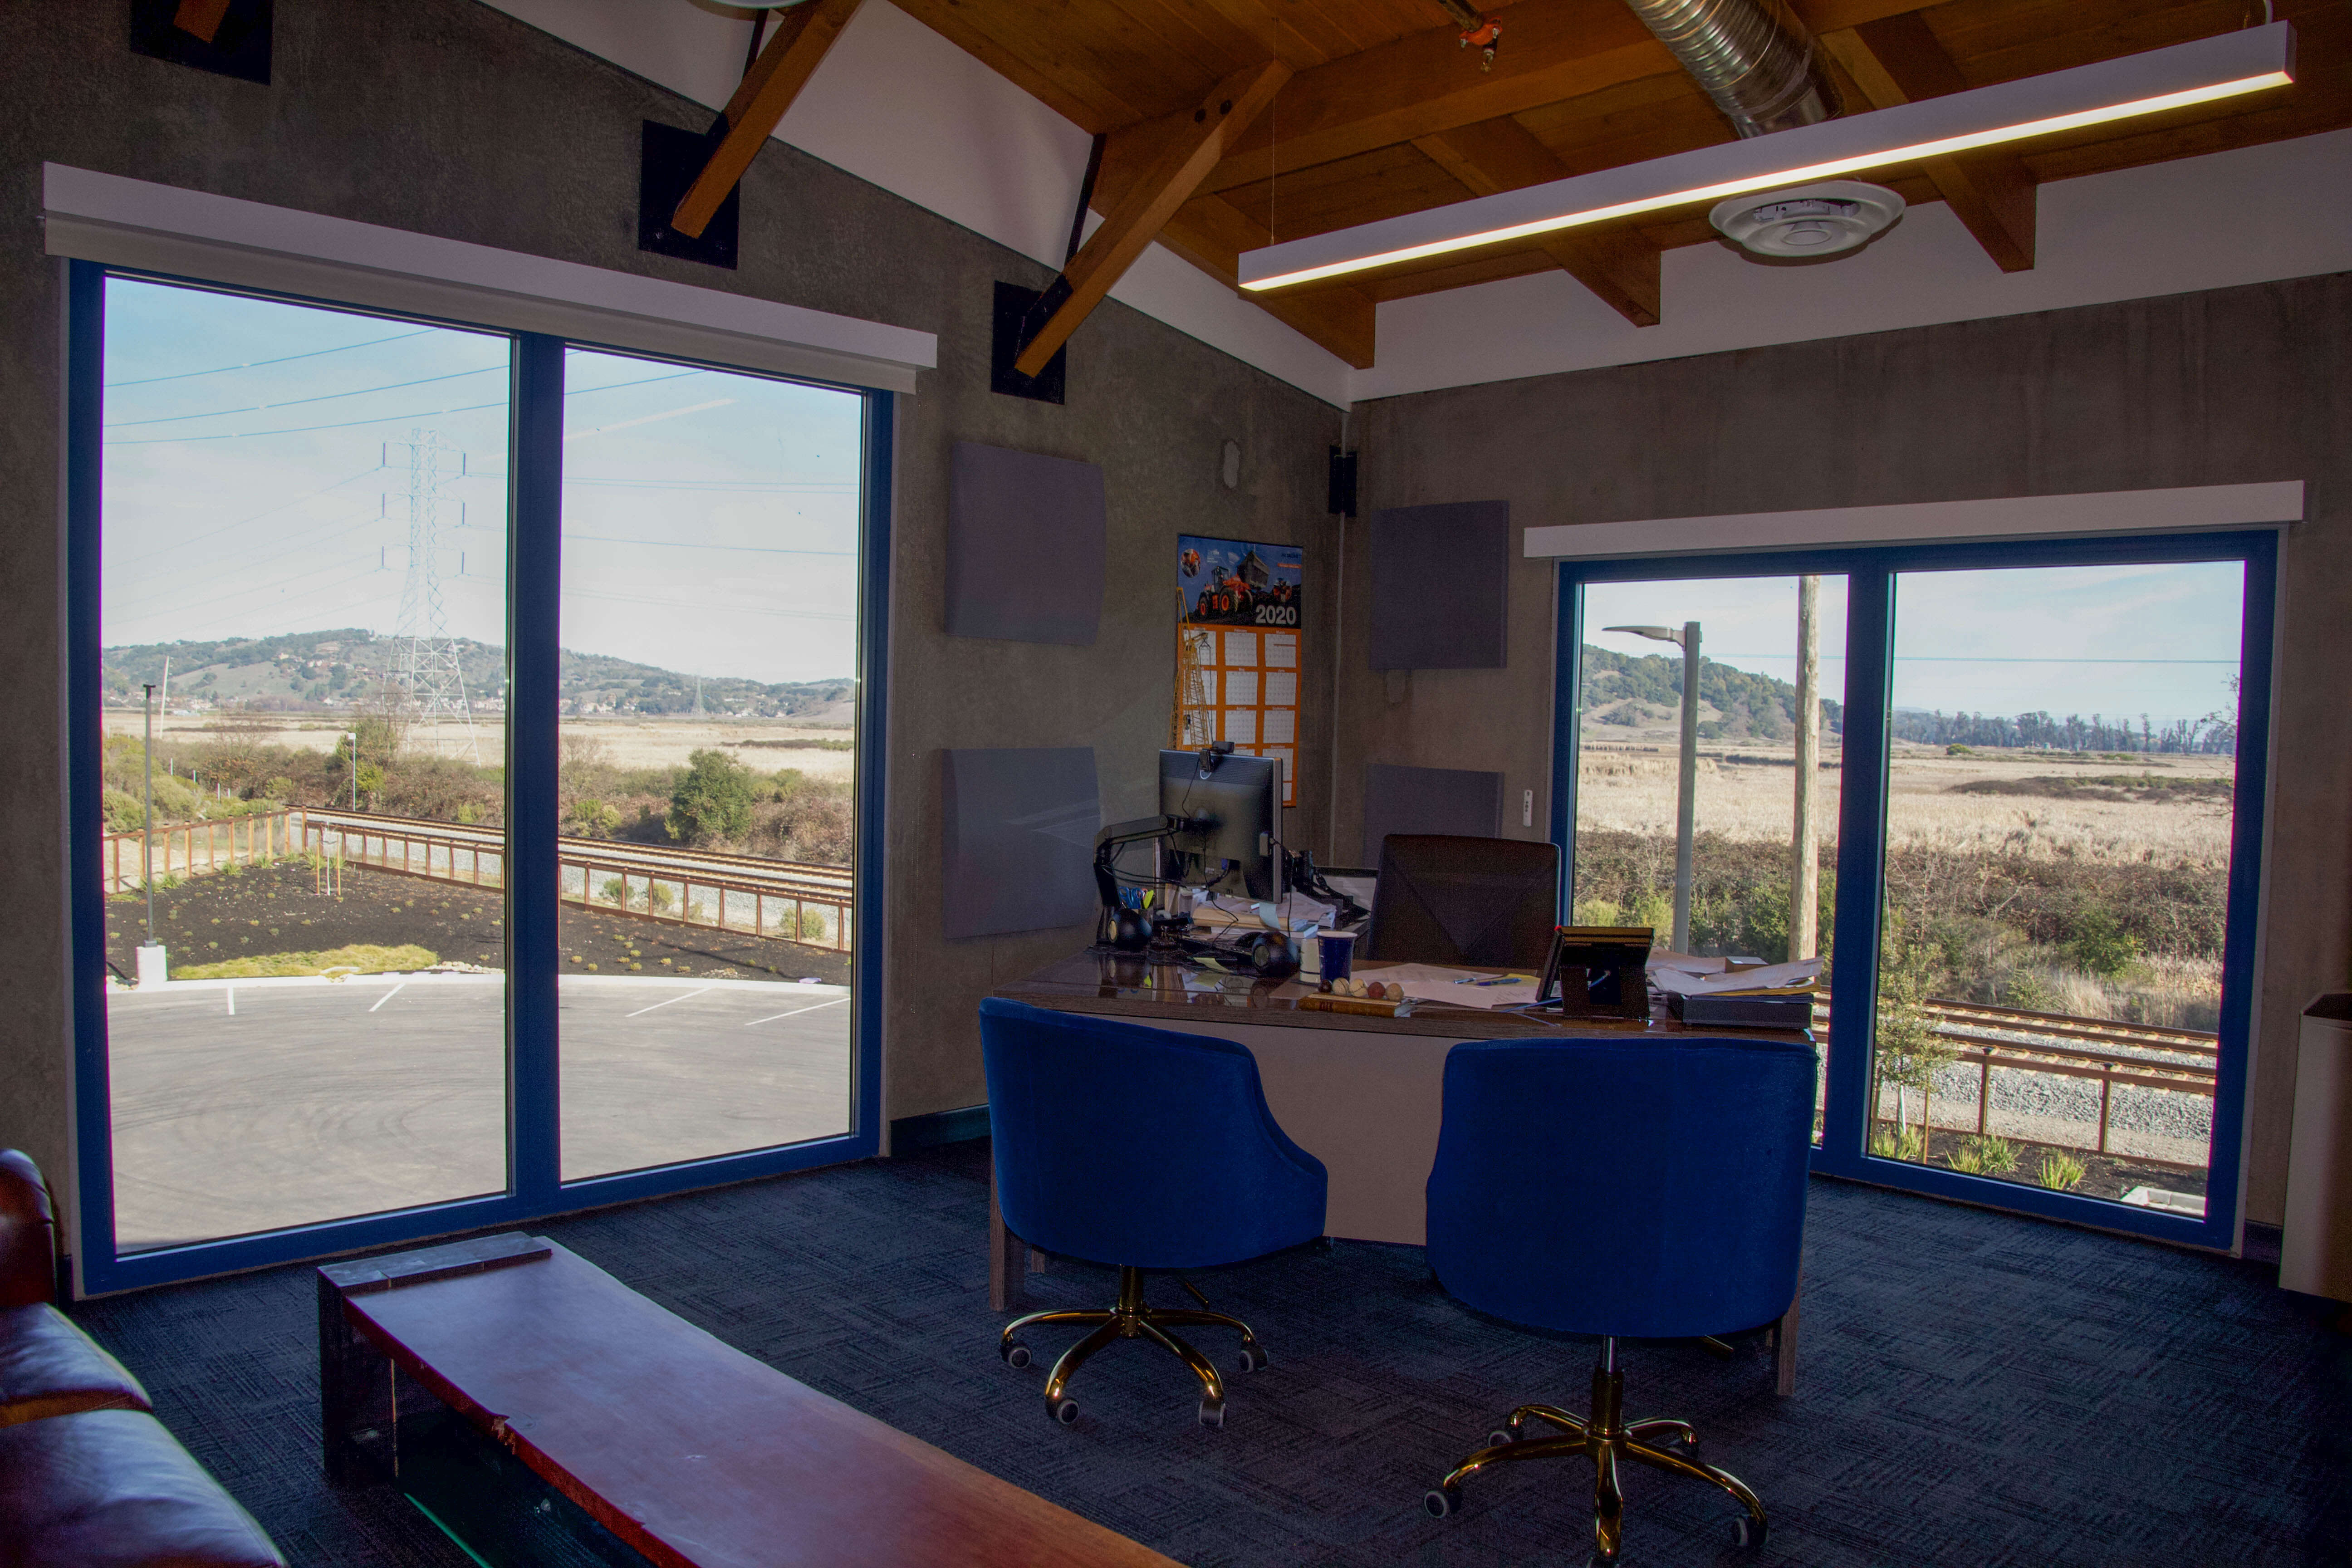 10. Executive Office with View